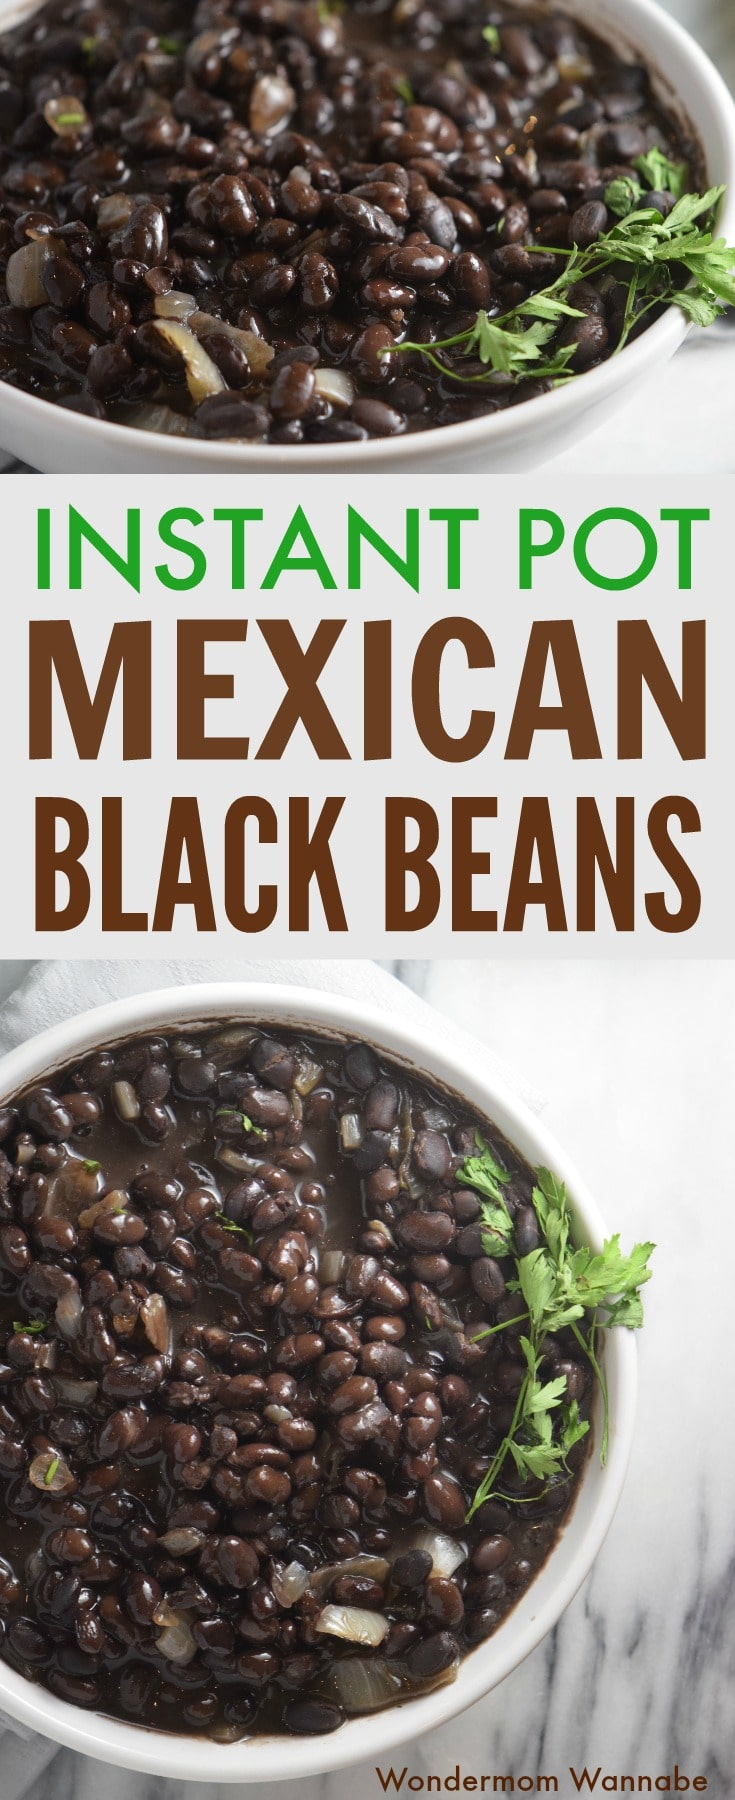 These Instant Pot Mexican Black Beans are the perfect Mexican side dish. Delicious, nutritious, and SO easy to make! #instantpot #pressurecooker #Mexican #blackbeans #sidedish via @wondermomwannab